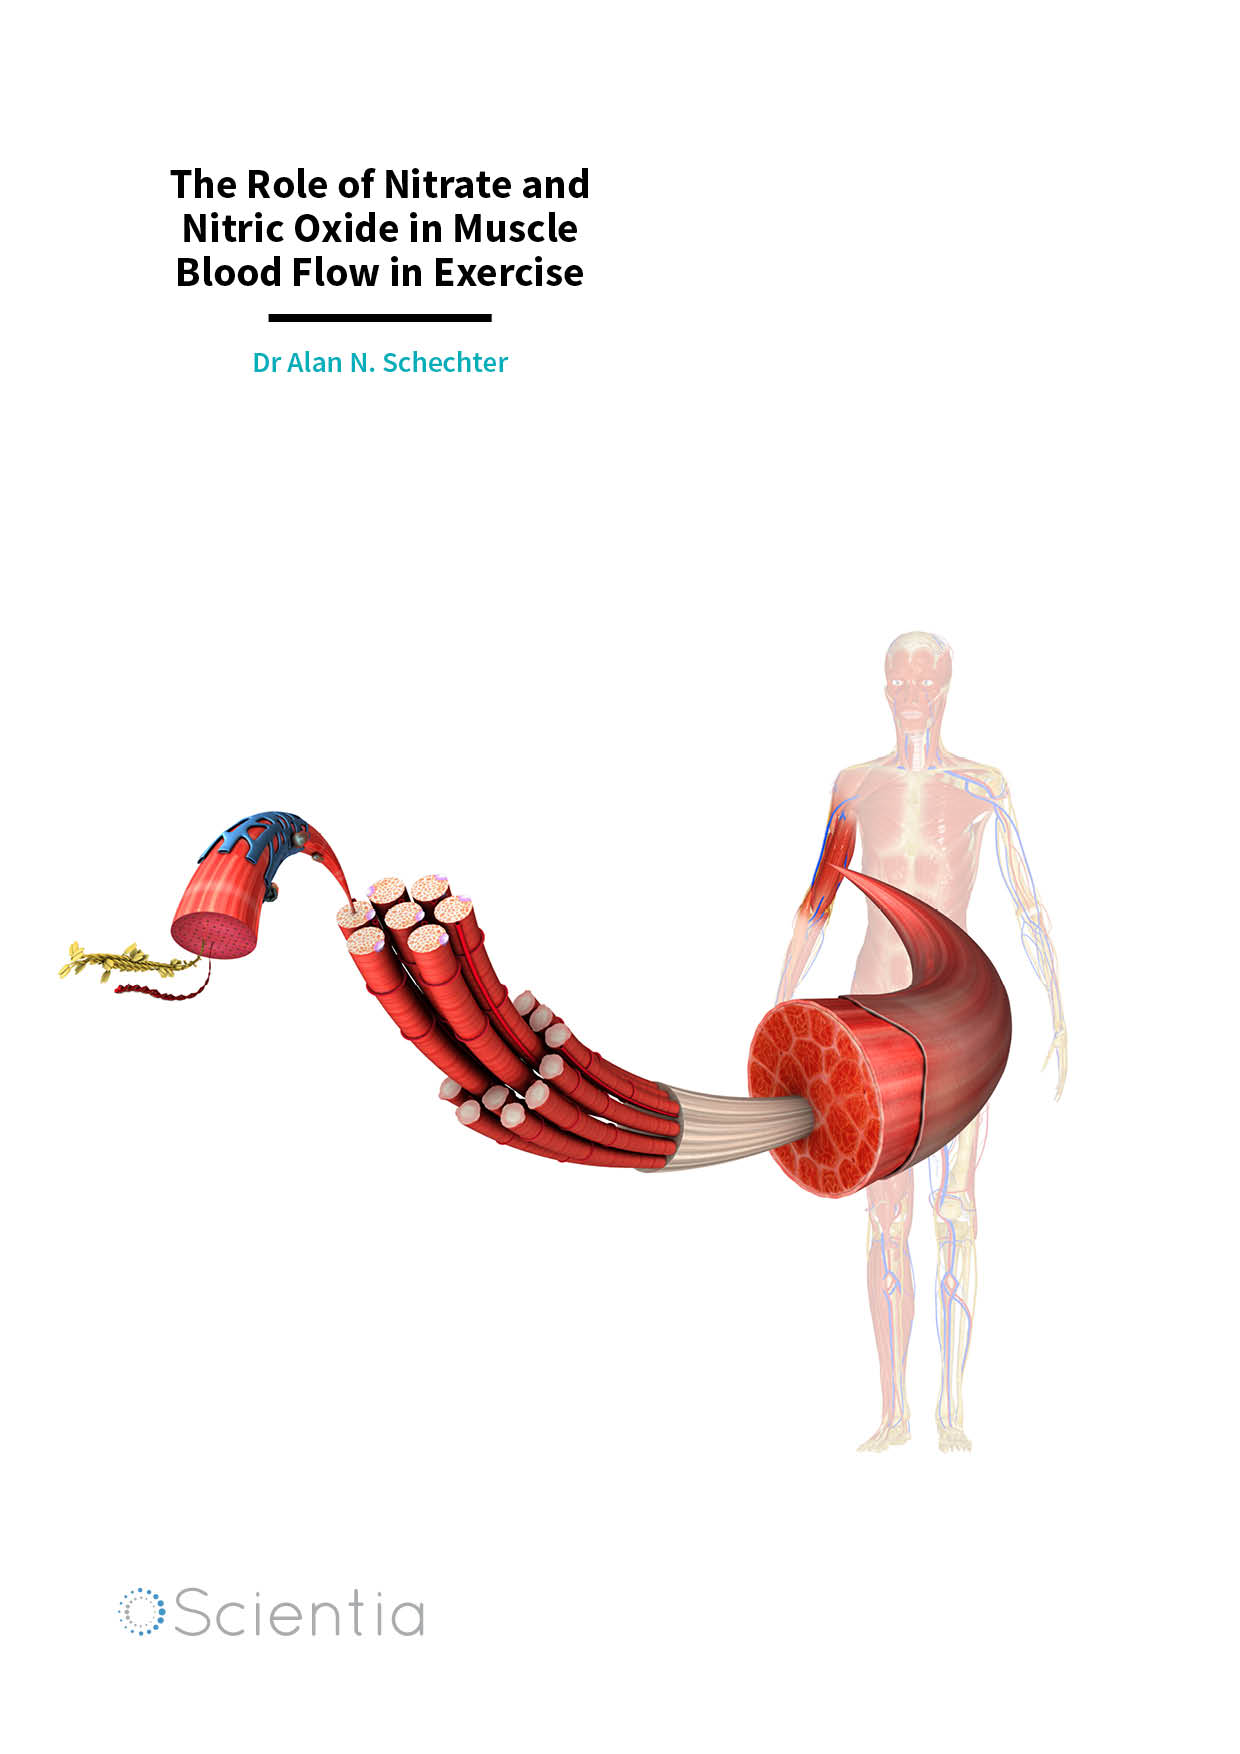 Dr Alan N. Schechter – The Role of Nitrate and Nitric Oxide in Muscle Blood Flow in Exercise